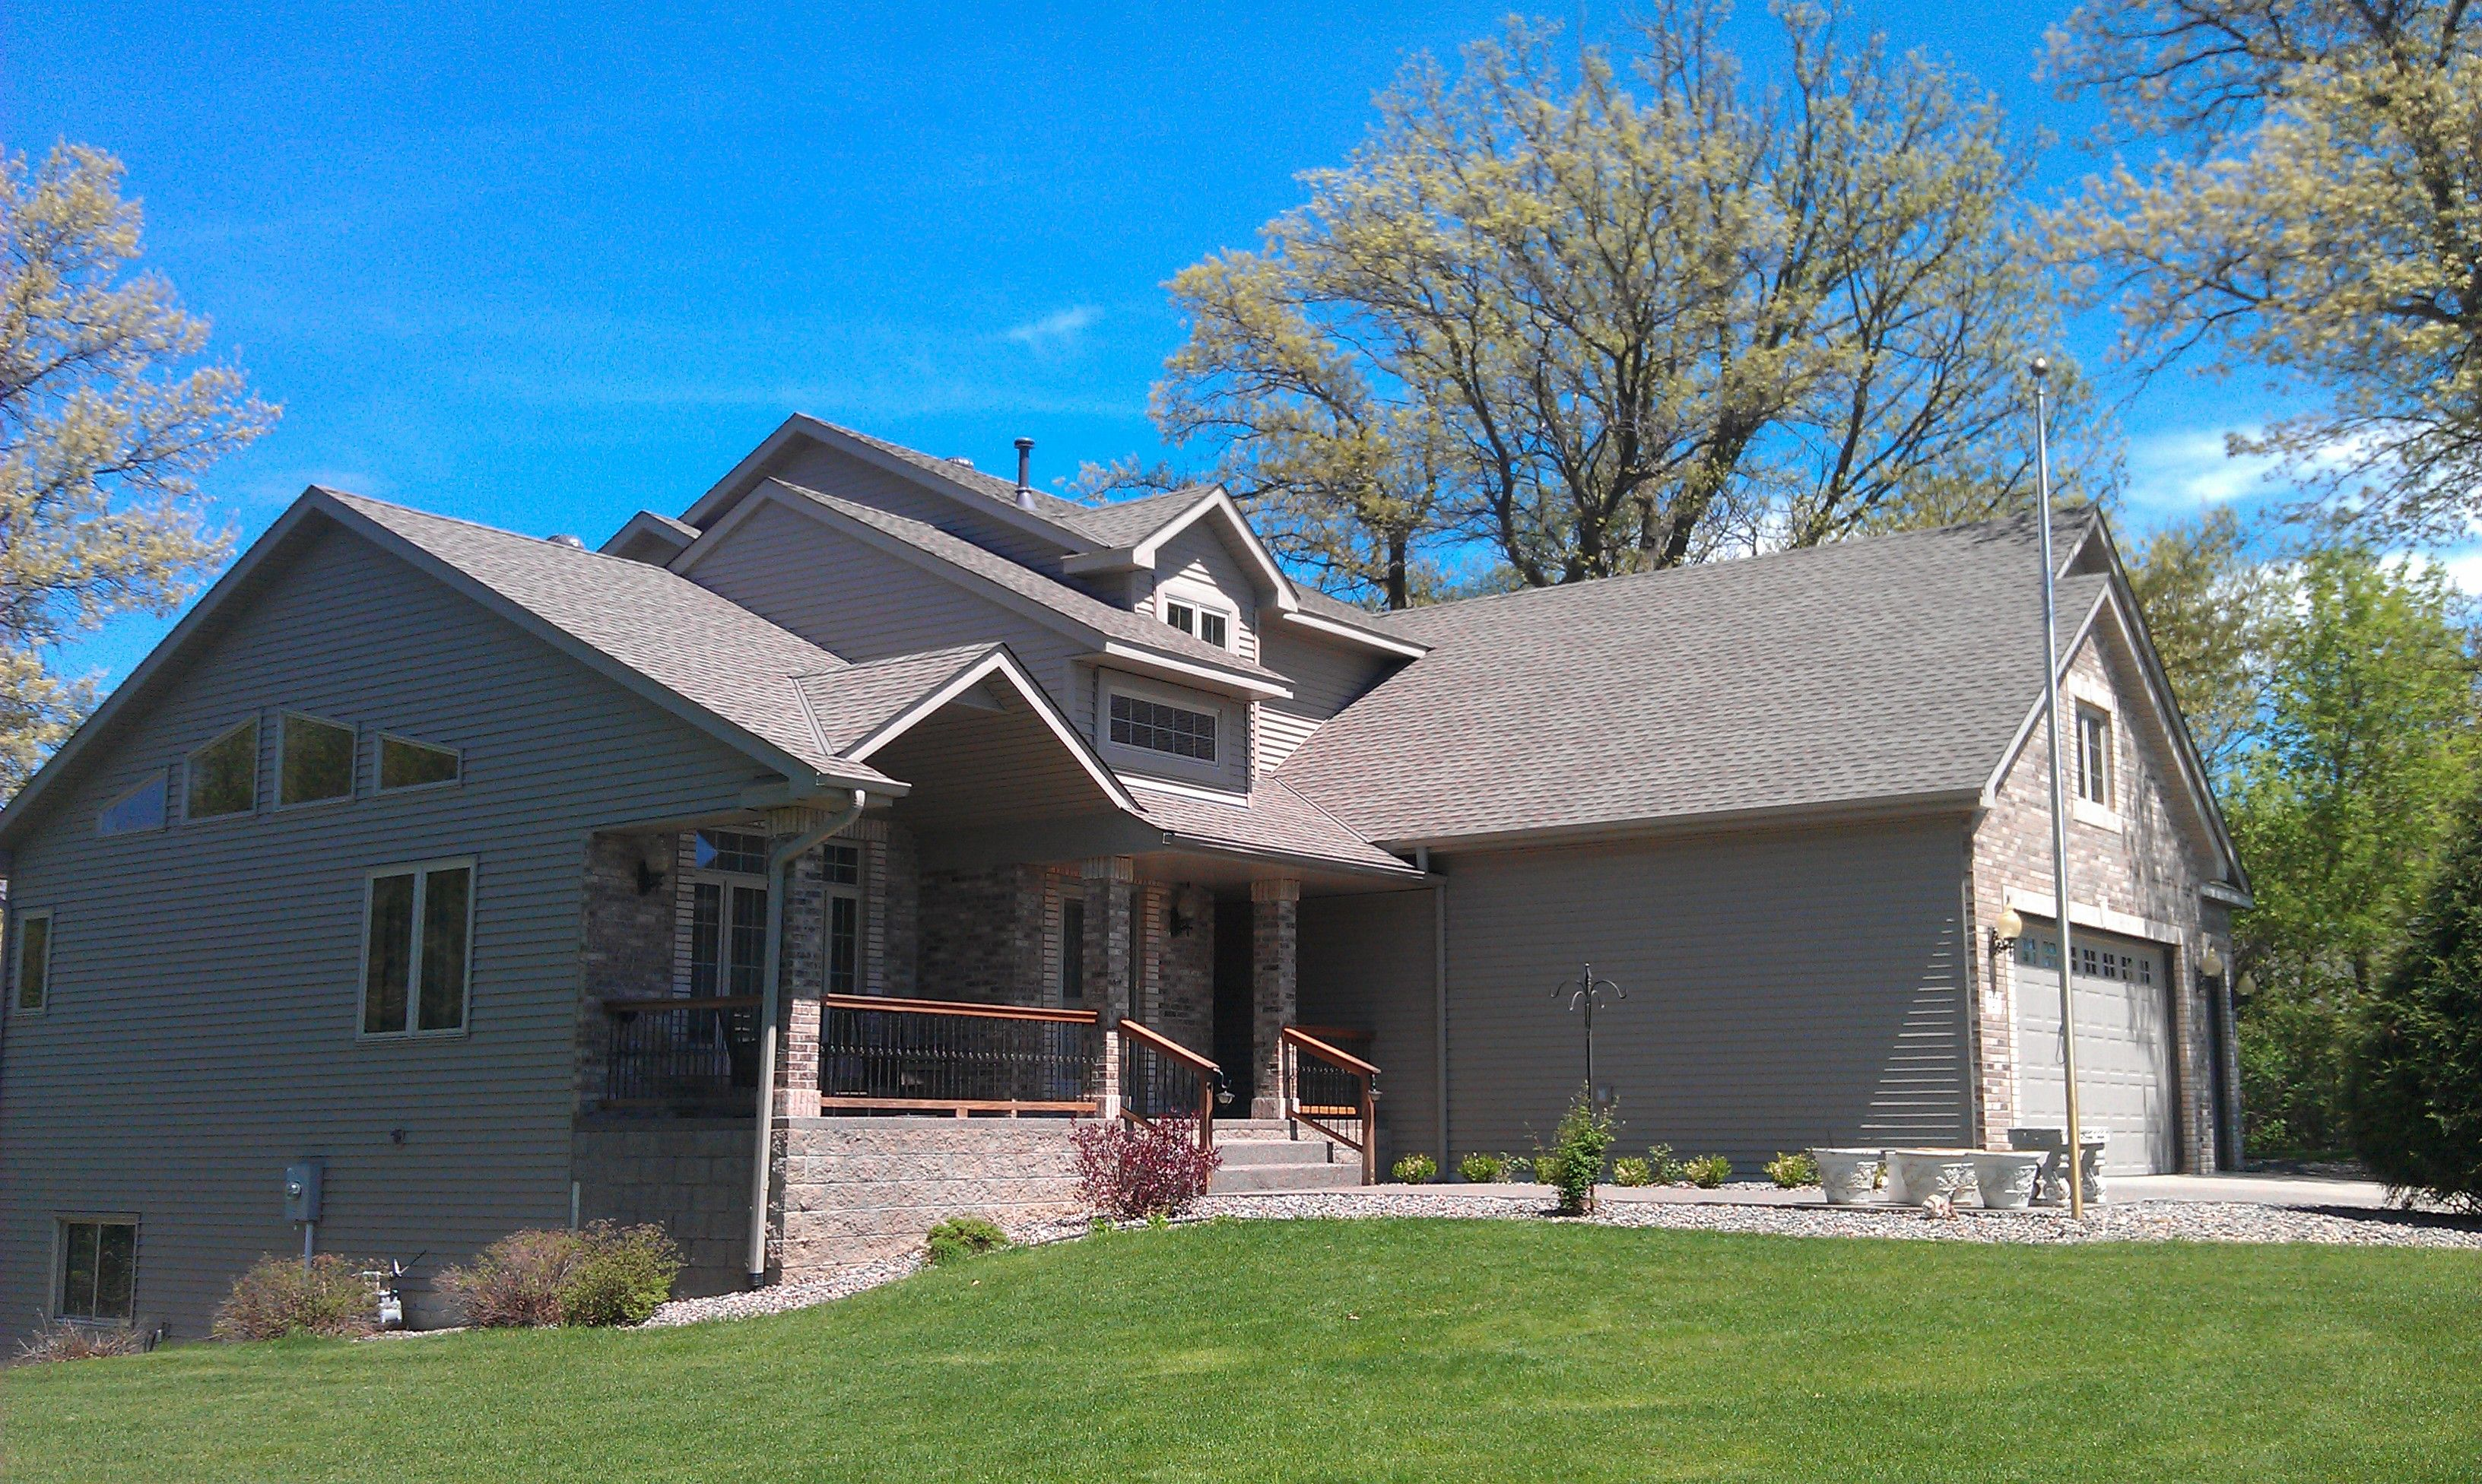 Roofing services by Total Home Exteriors of Andover, MN. | Roofing ...